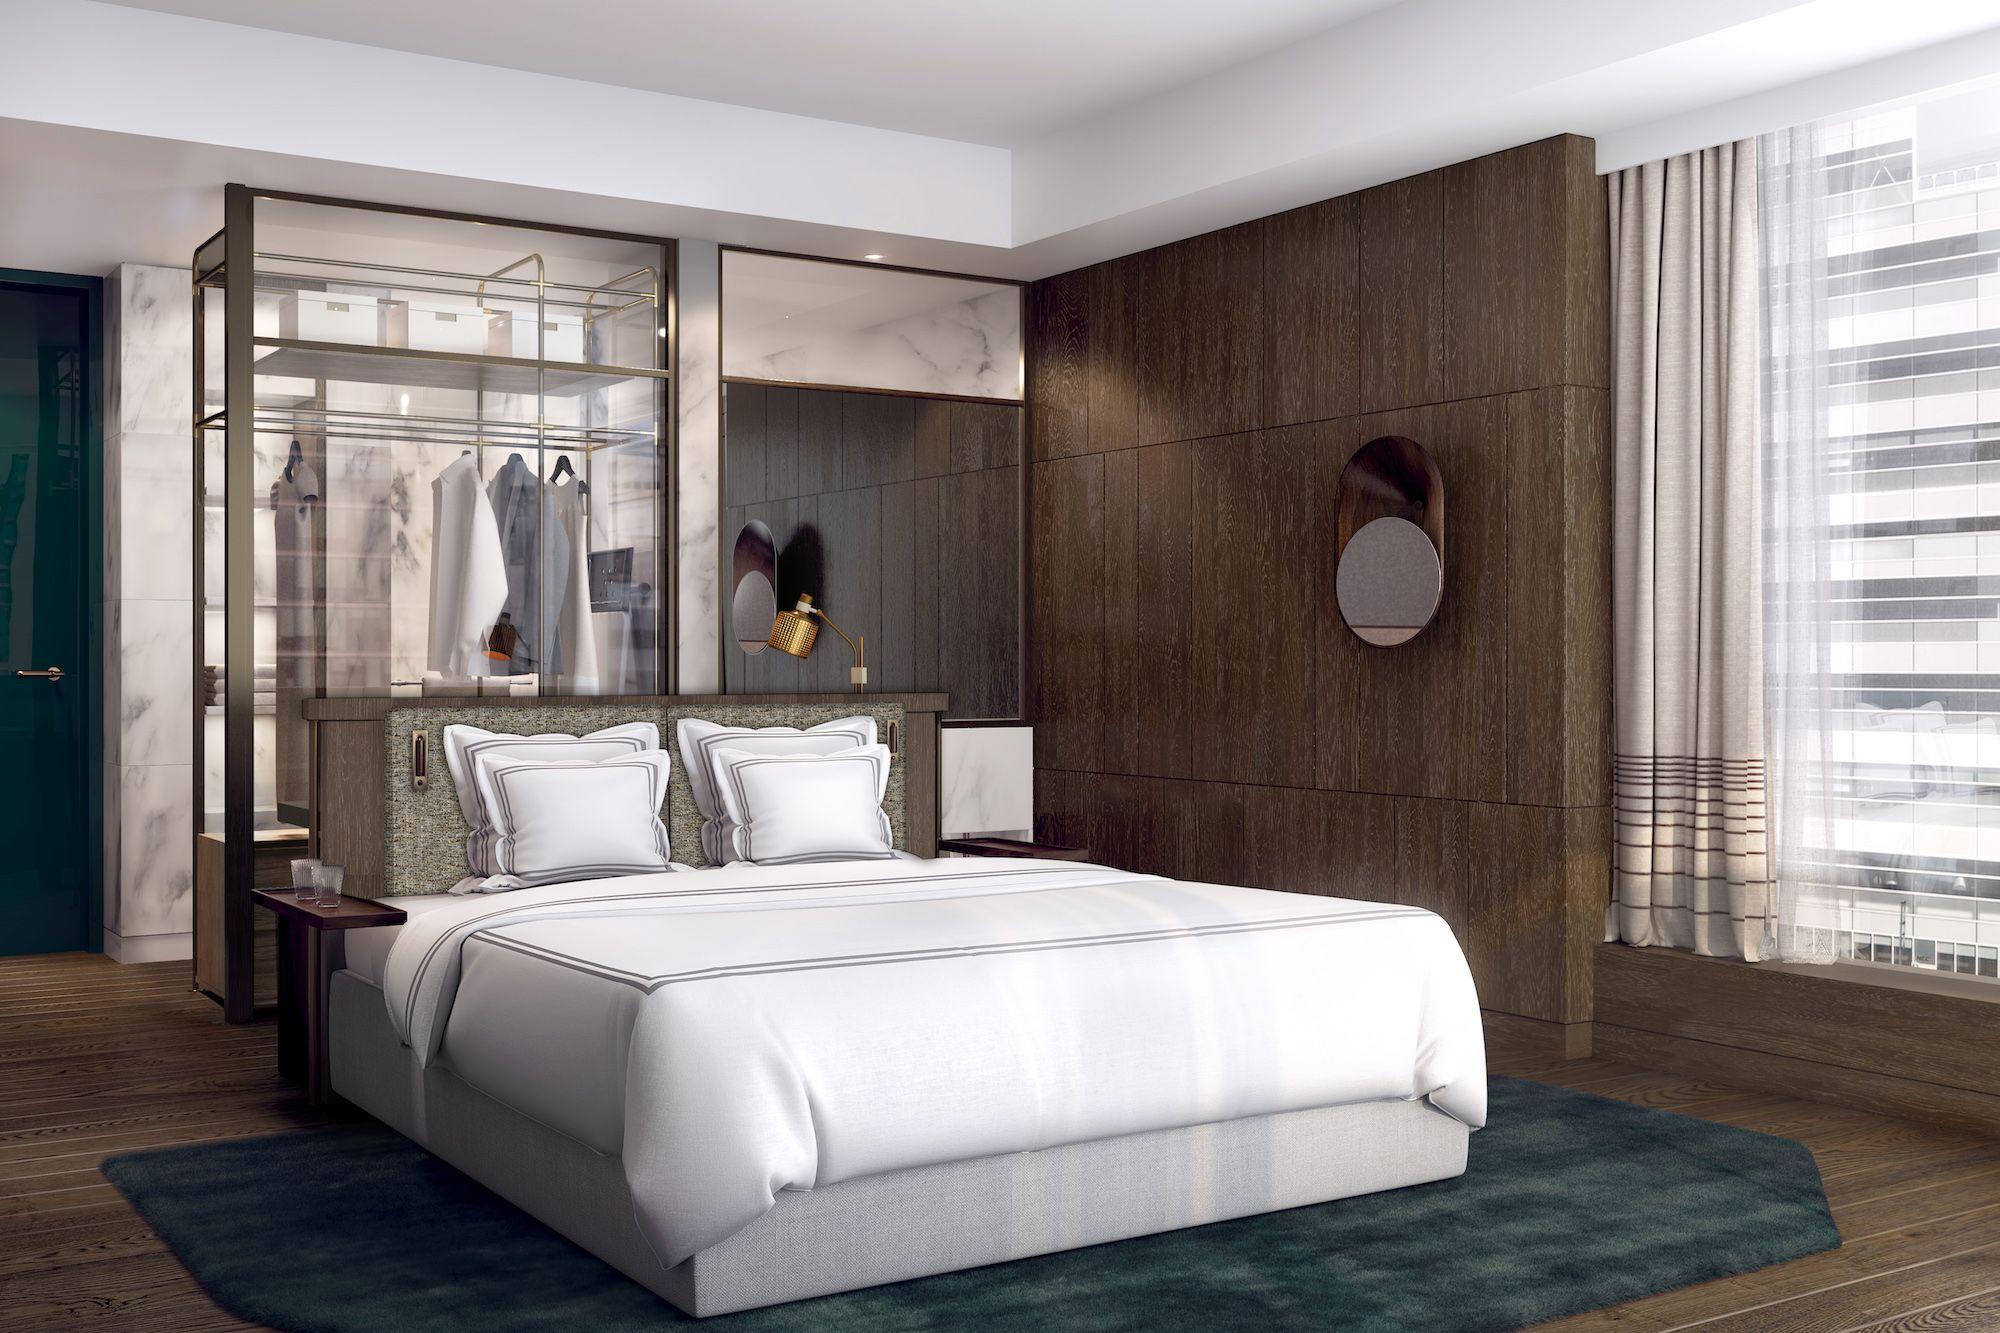 First Look: The Hari Hong Kong Opens This Winter 2020